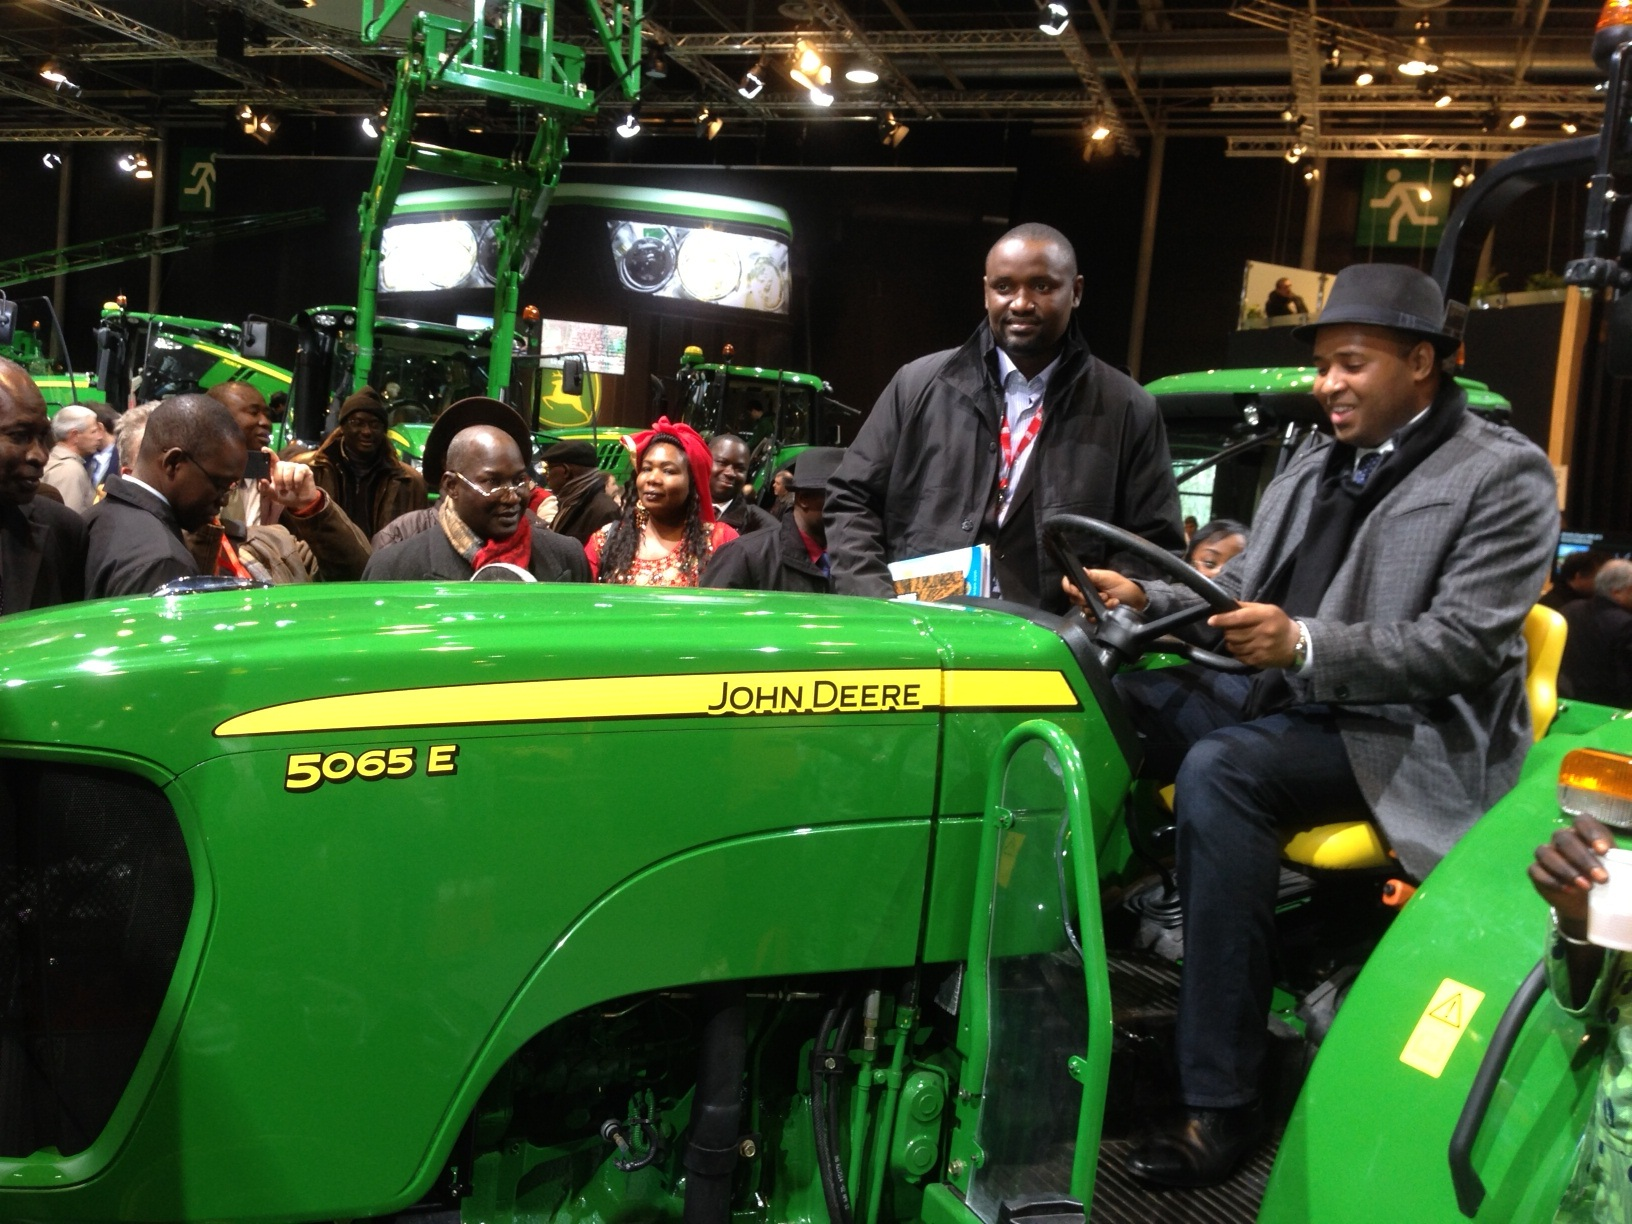 Senegalese Minister of Agriculture, Mr. Abdoulaye Baldé, seated on a John Deere 5065E Tractor.